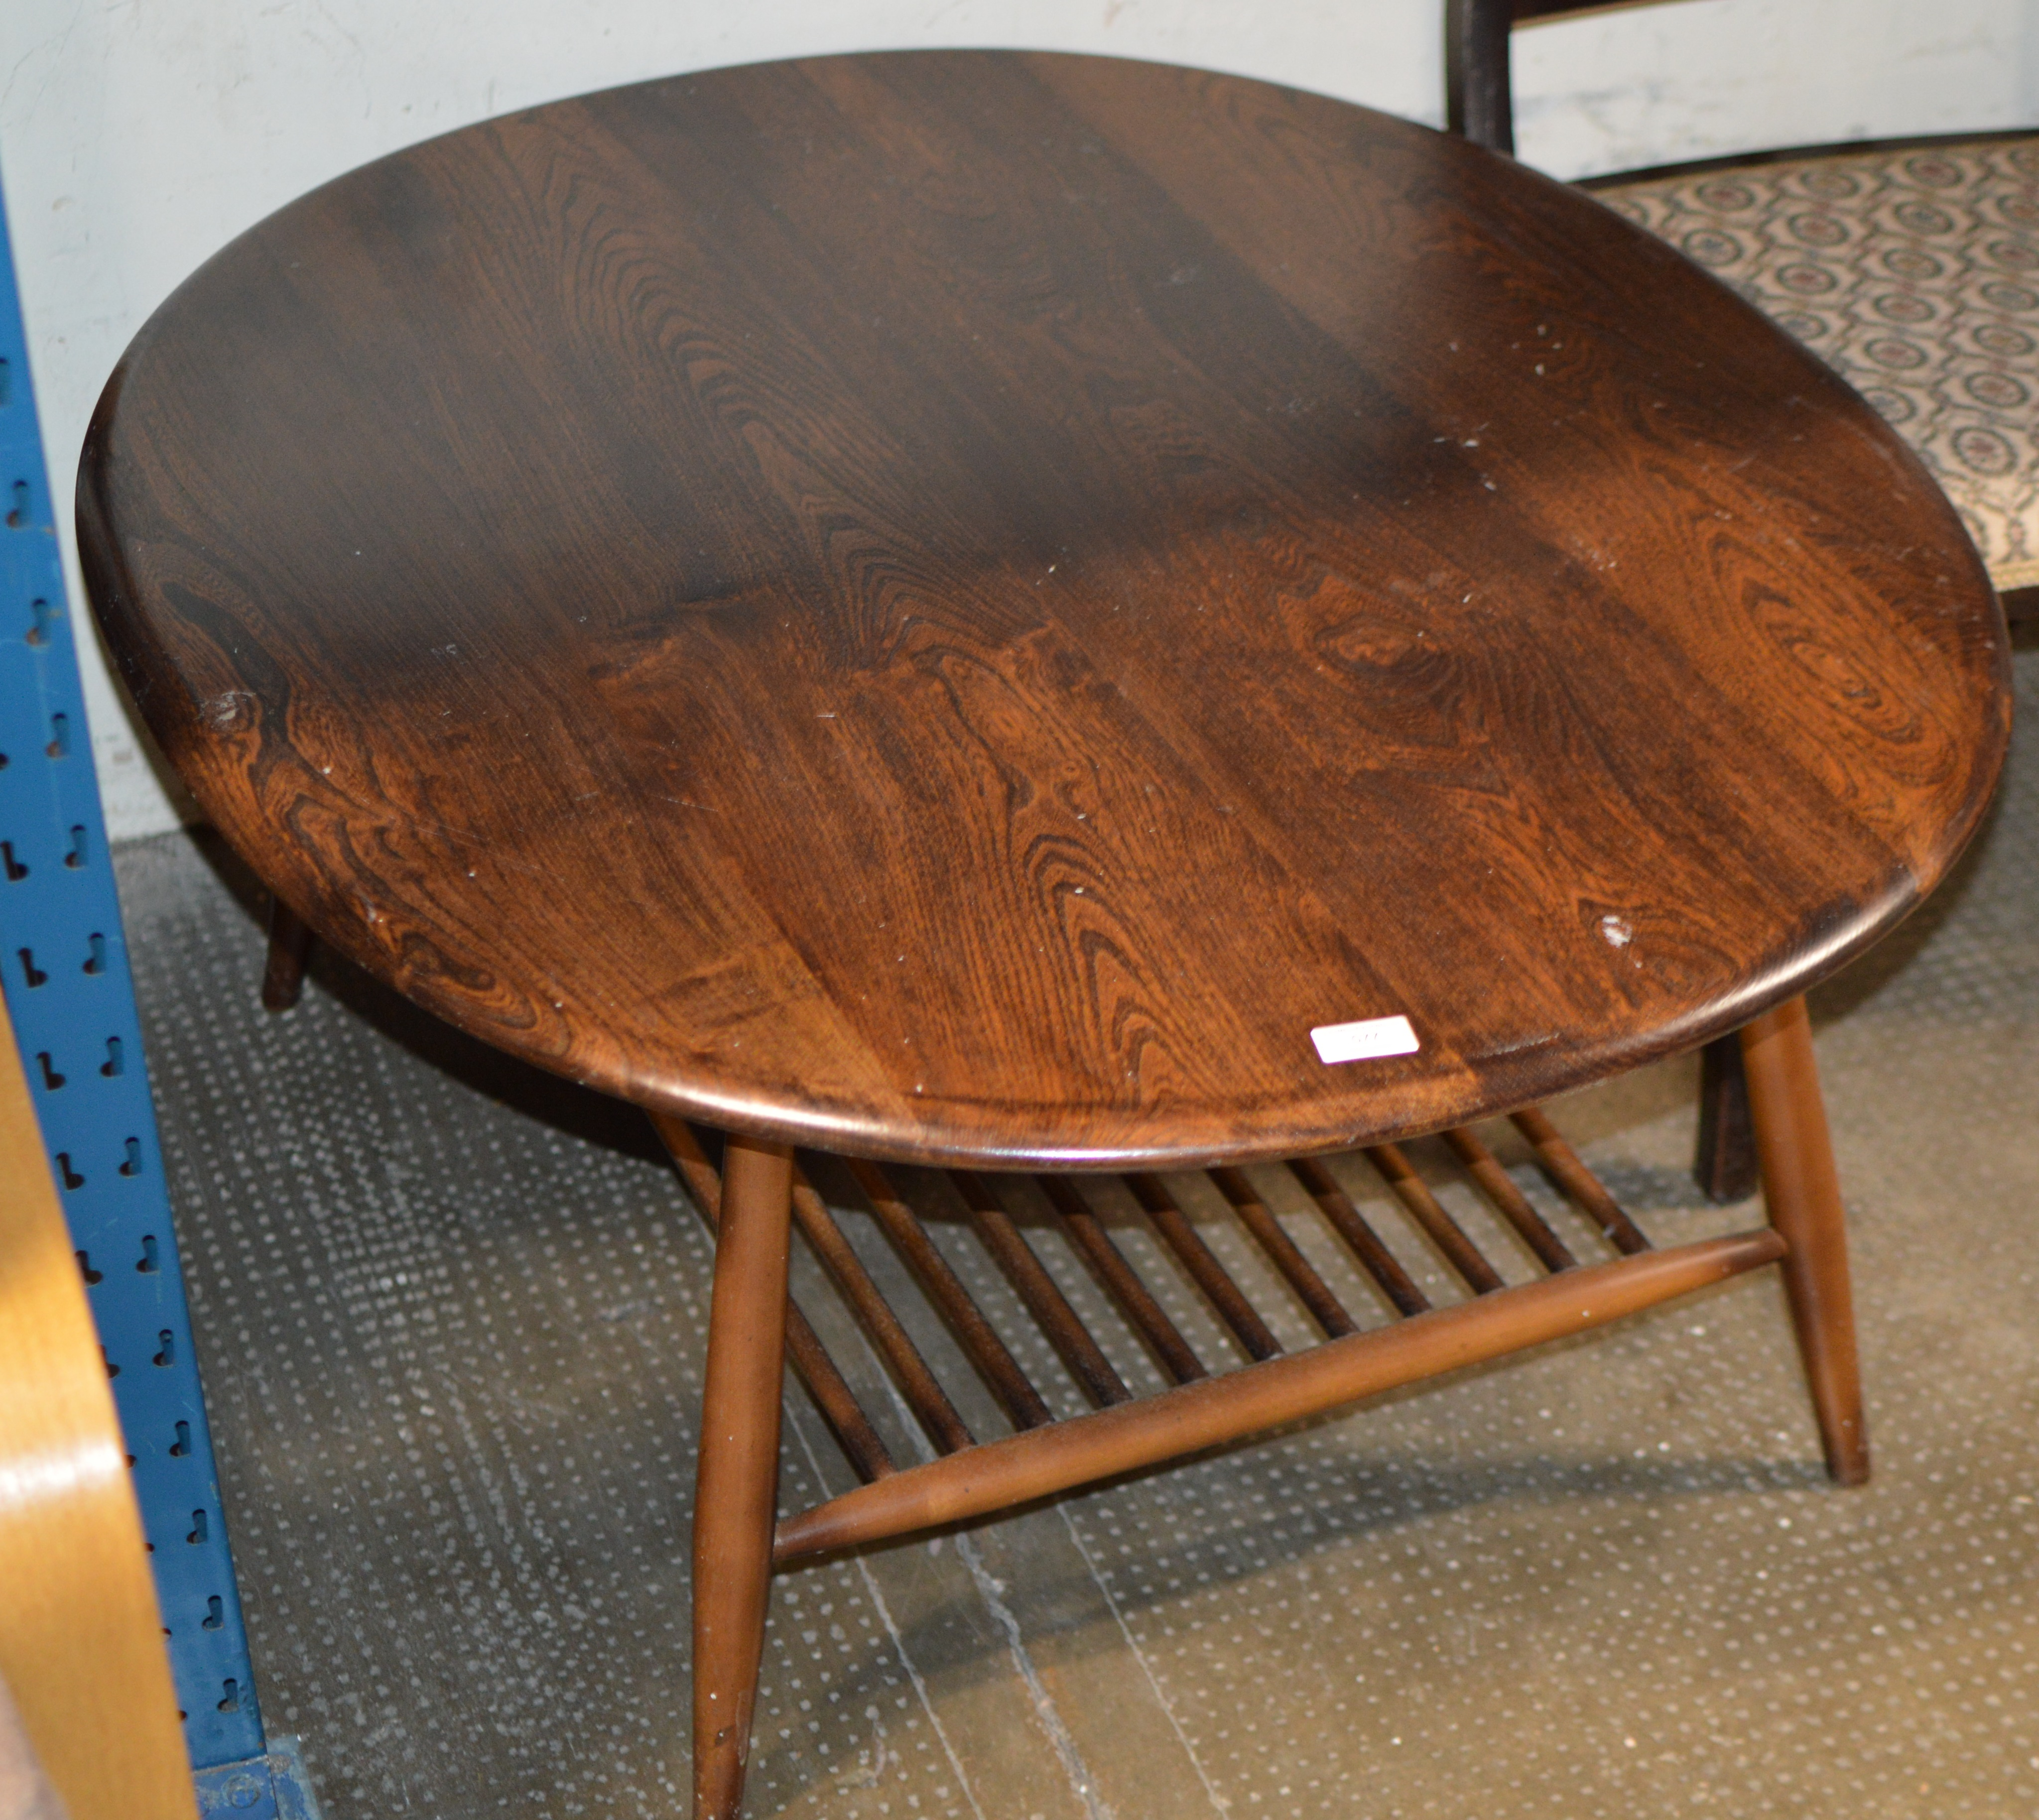 Lot 77 - ERCOL COFFEE TABLE